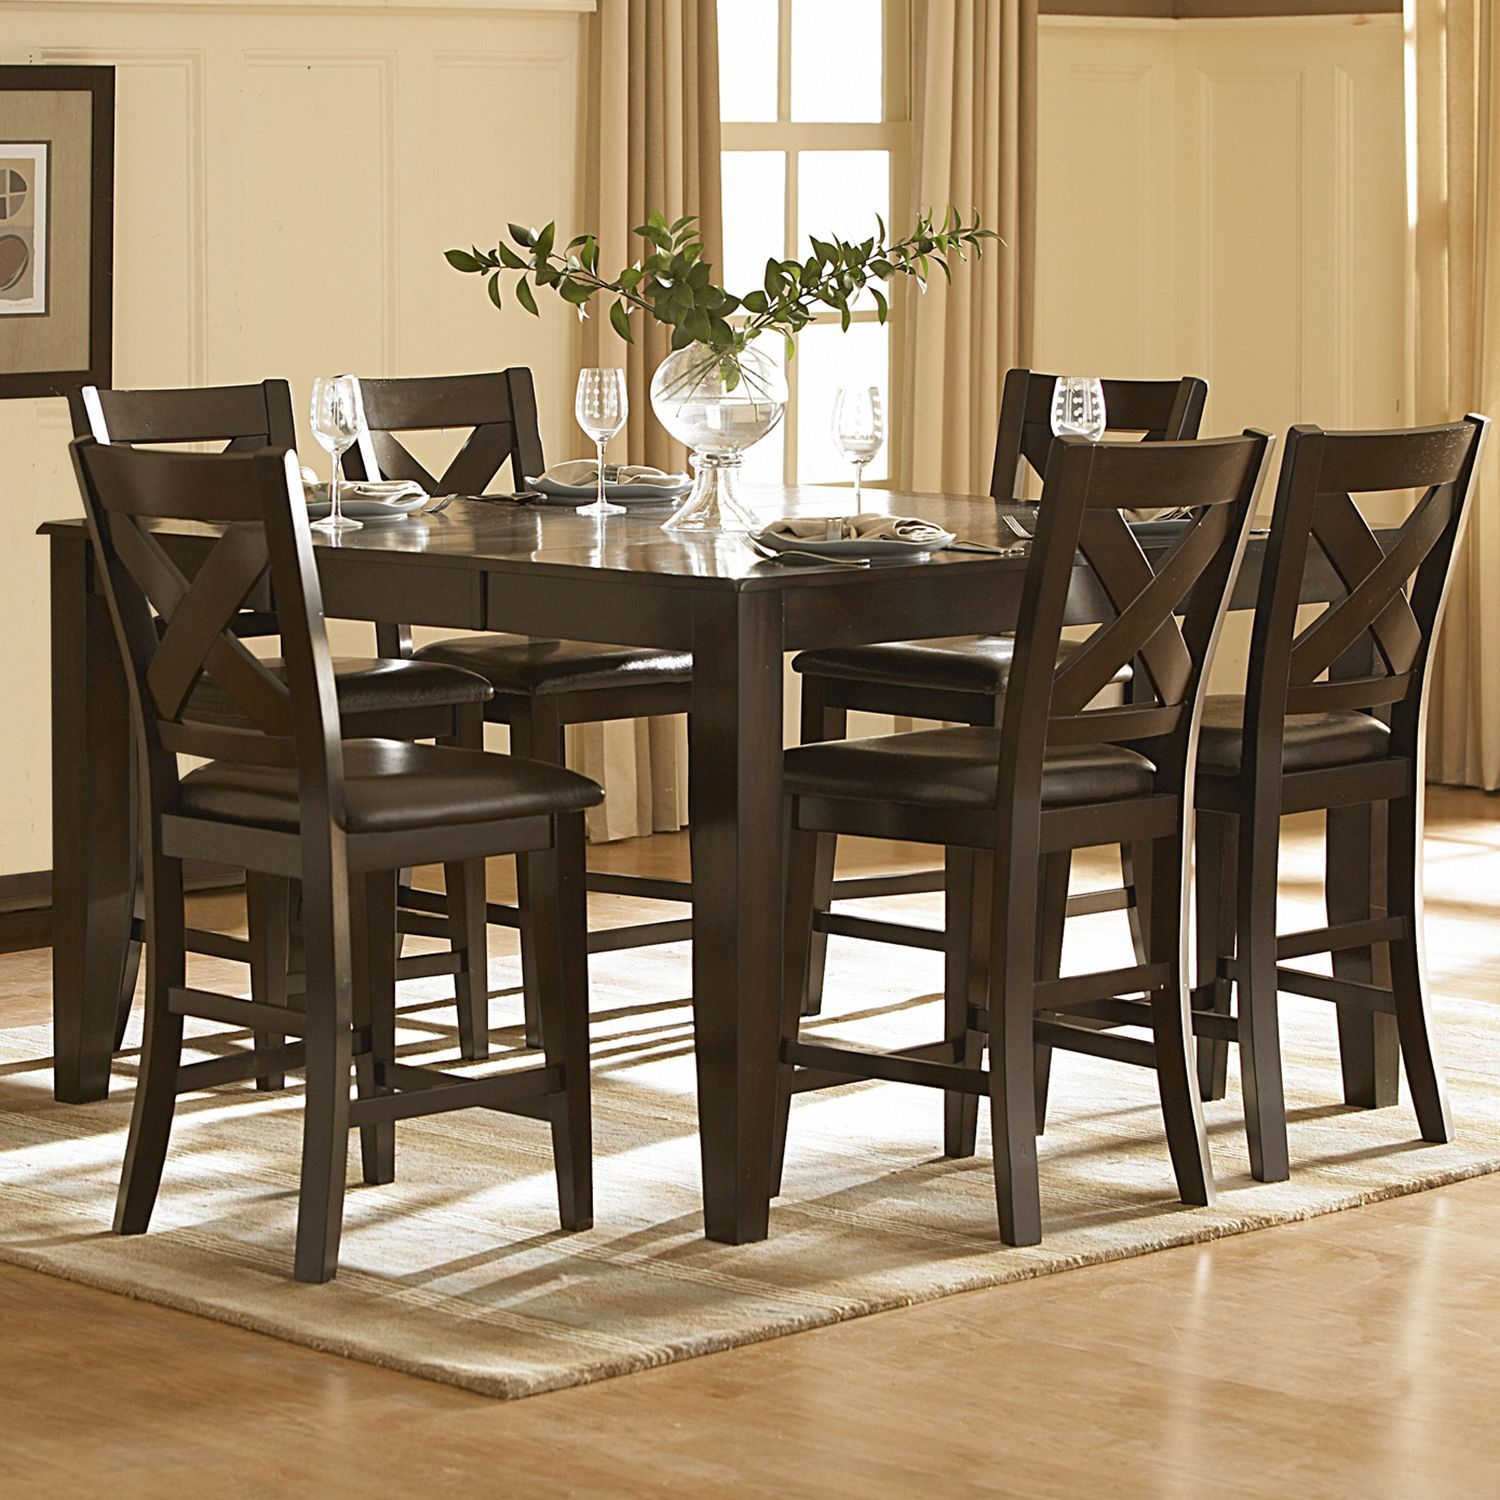 Acton Merlot Counter Height Dining Table by iNSPIRE Q Classic by iNSPIRE Q